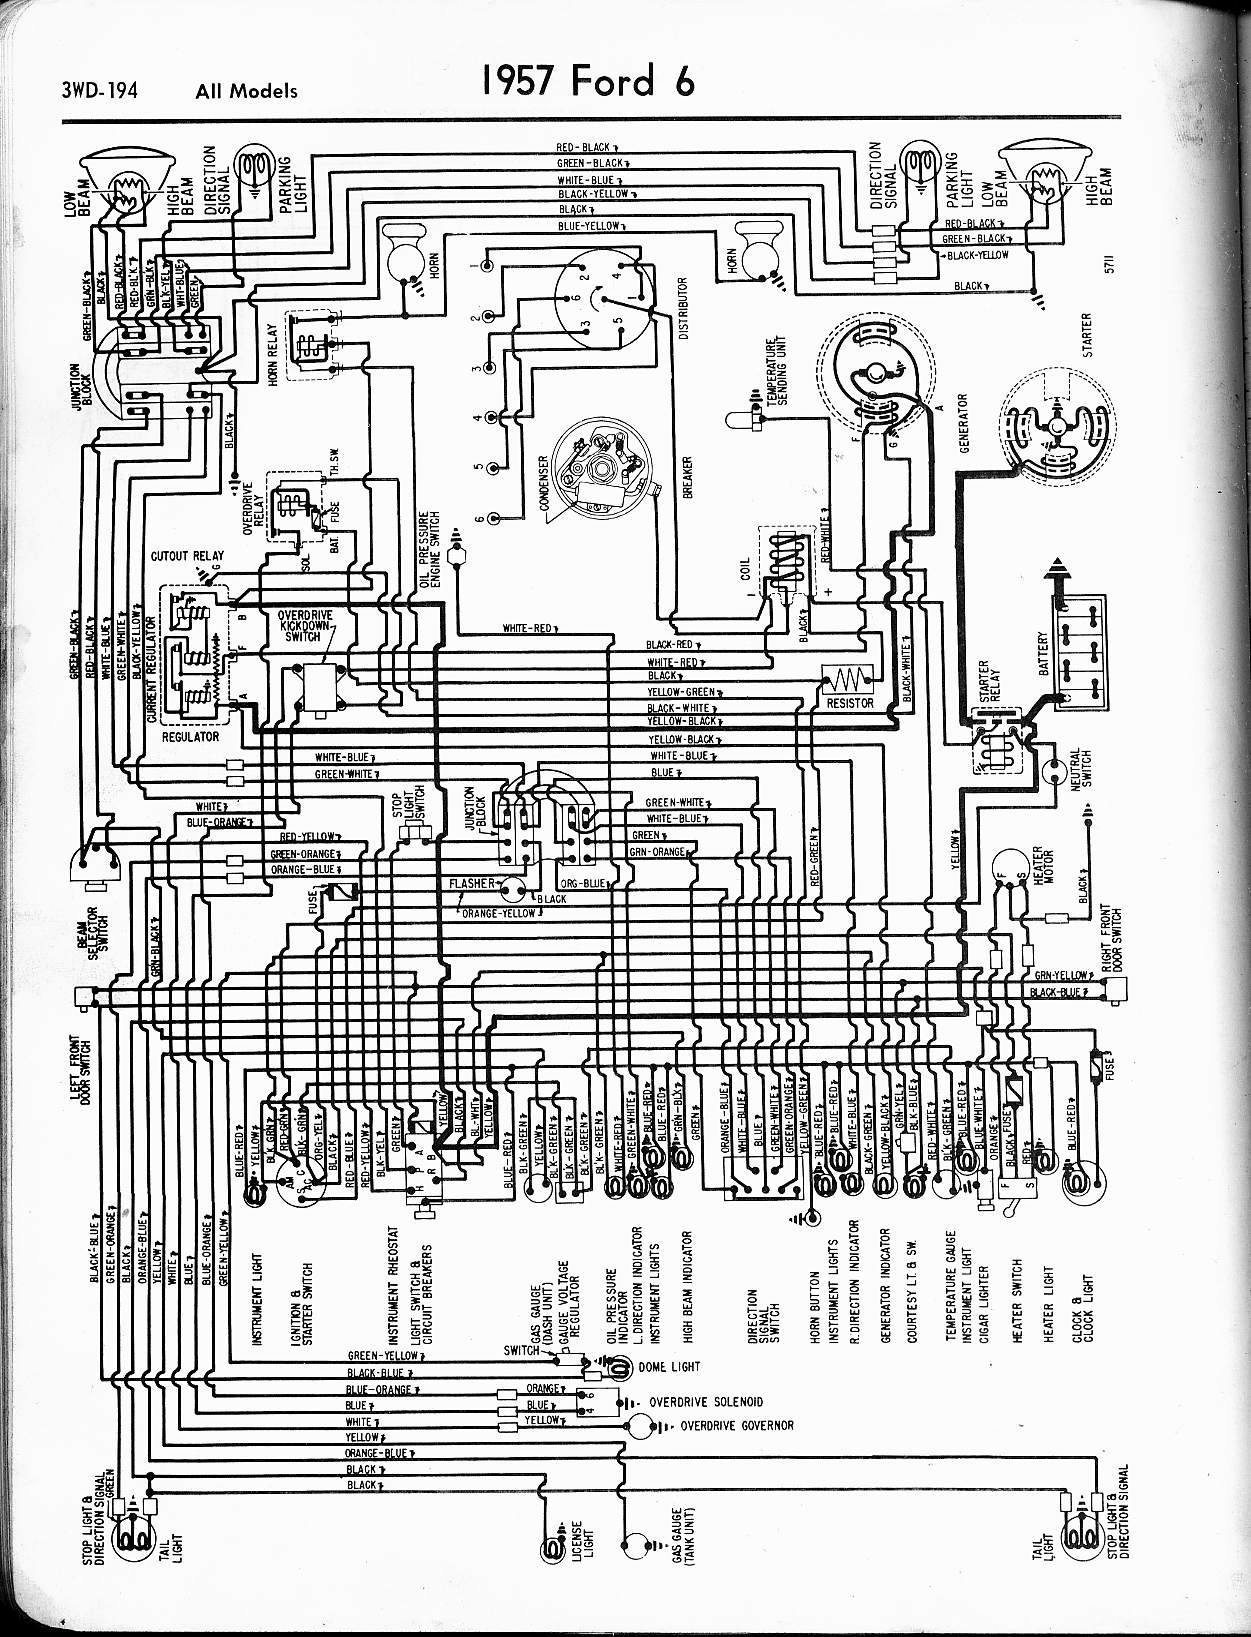 57_ford_wiring ford diagrams 1957 Ford Wiring Diagram at fashall.co